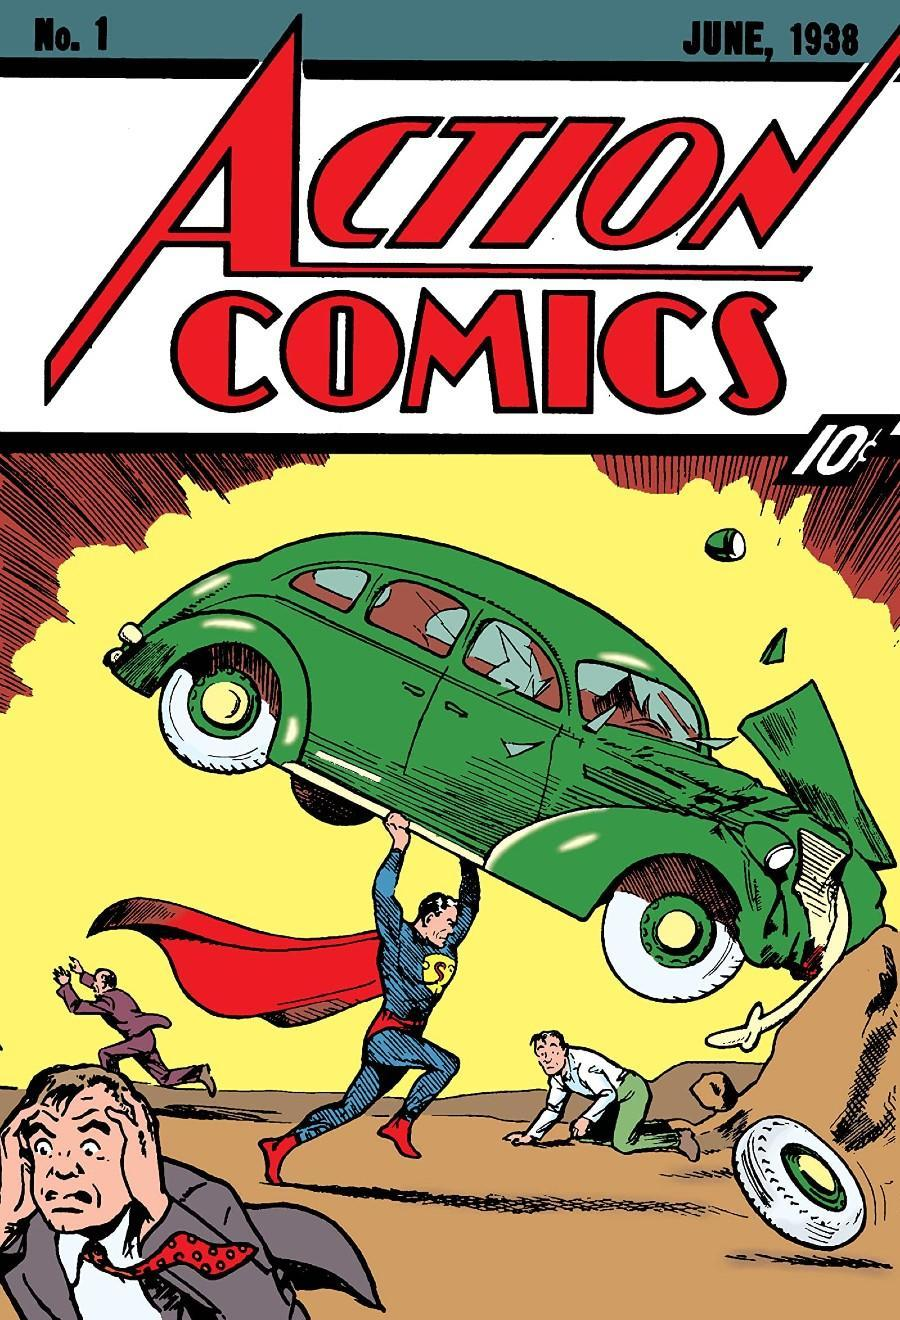 Full image for Action Comics #1 featuring the first appearance of Superman, seen here lifting a green car to save a citizen.